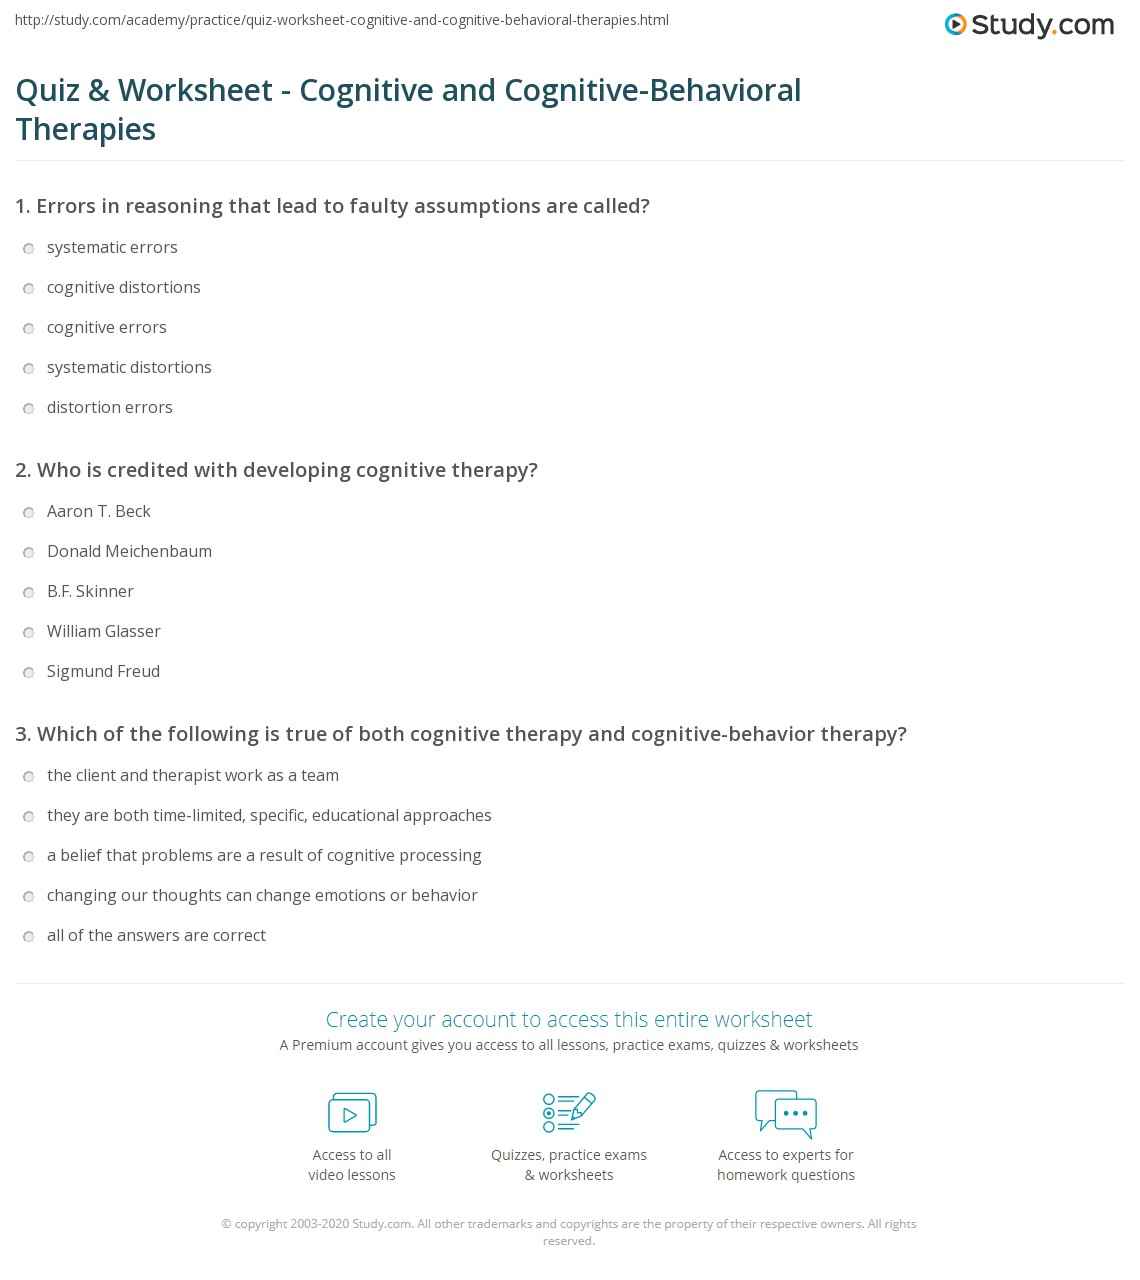 worksheet Cognitive Behavioral Therapy Worksheet quiz worksheet cognitive and behavioral therapies print worksheet